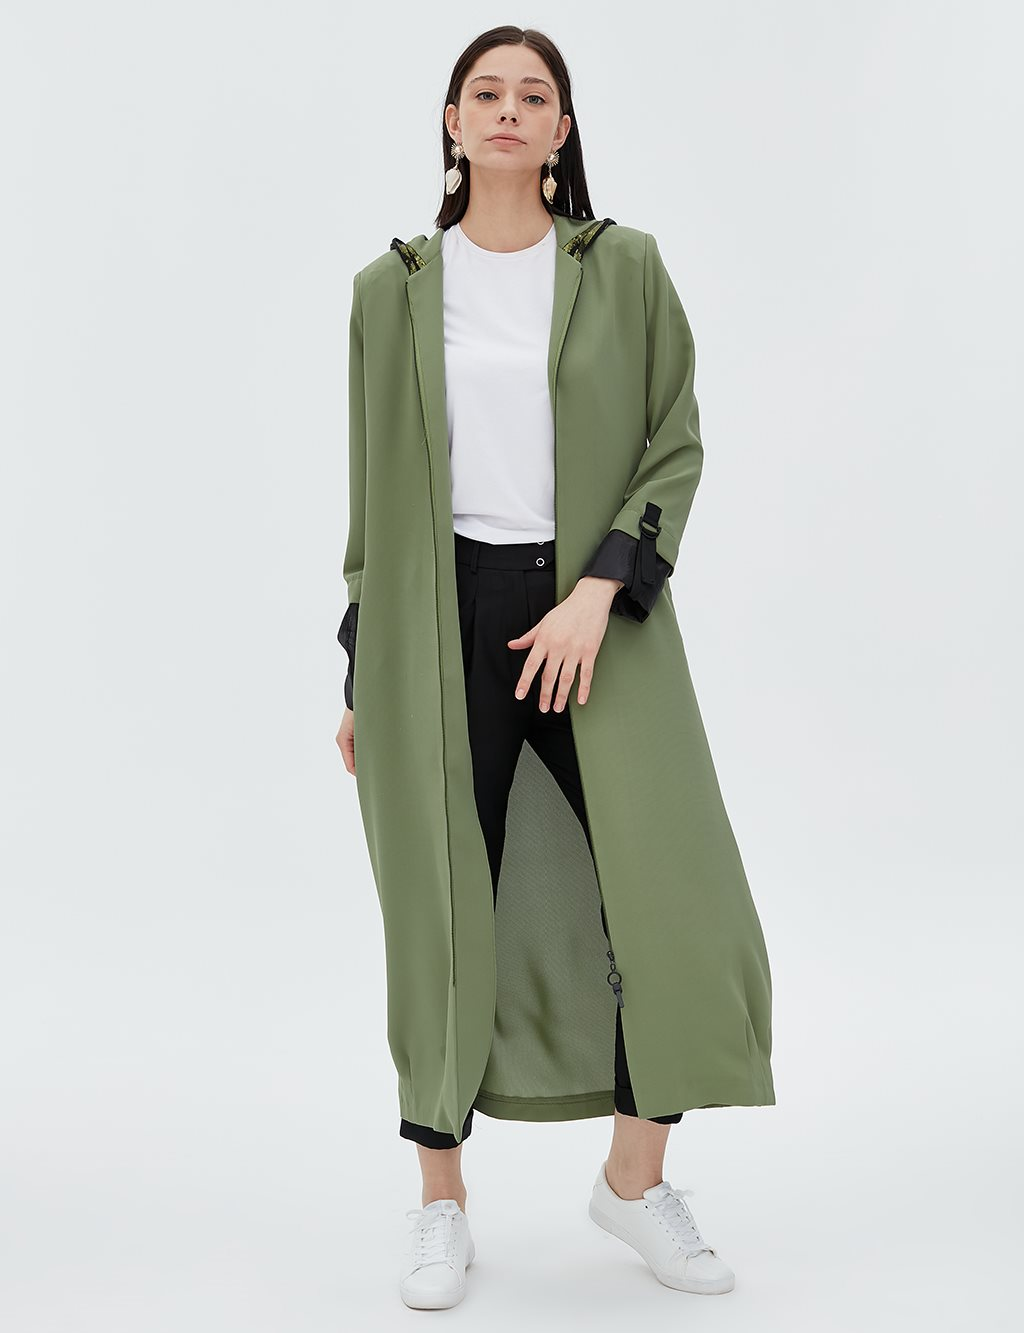 Coat With Sequin Detailed Hood B20 25010 Green